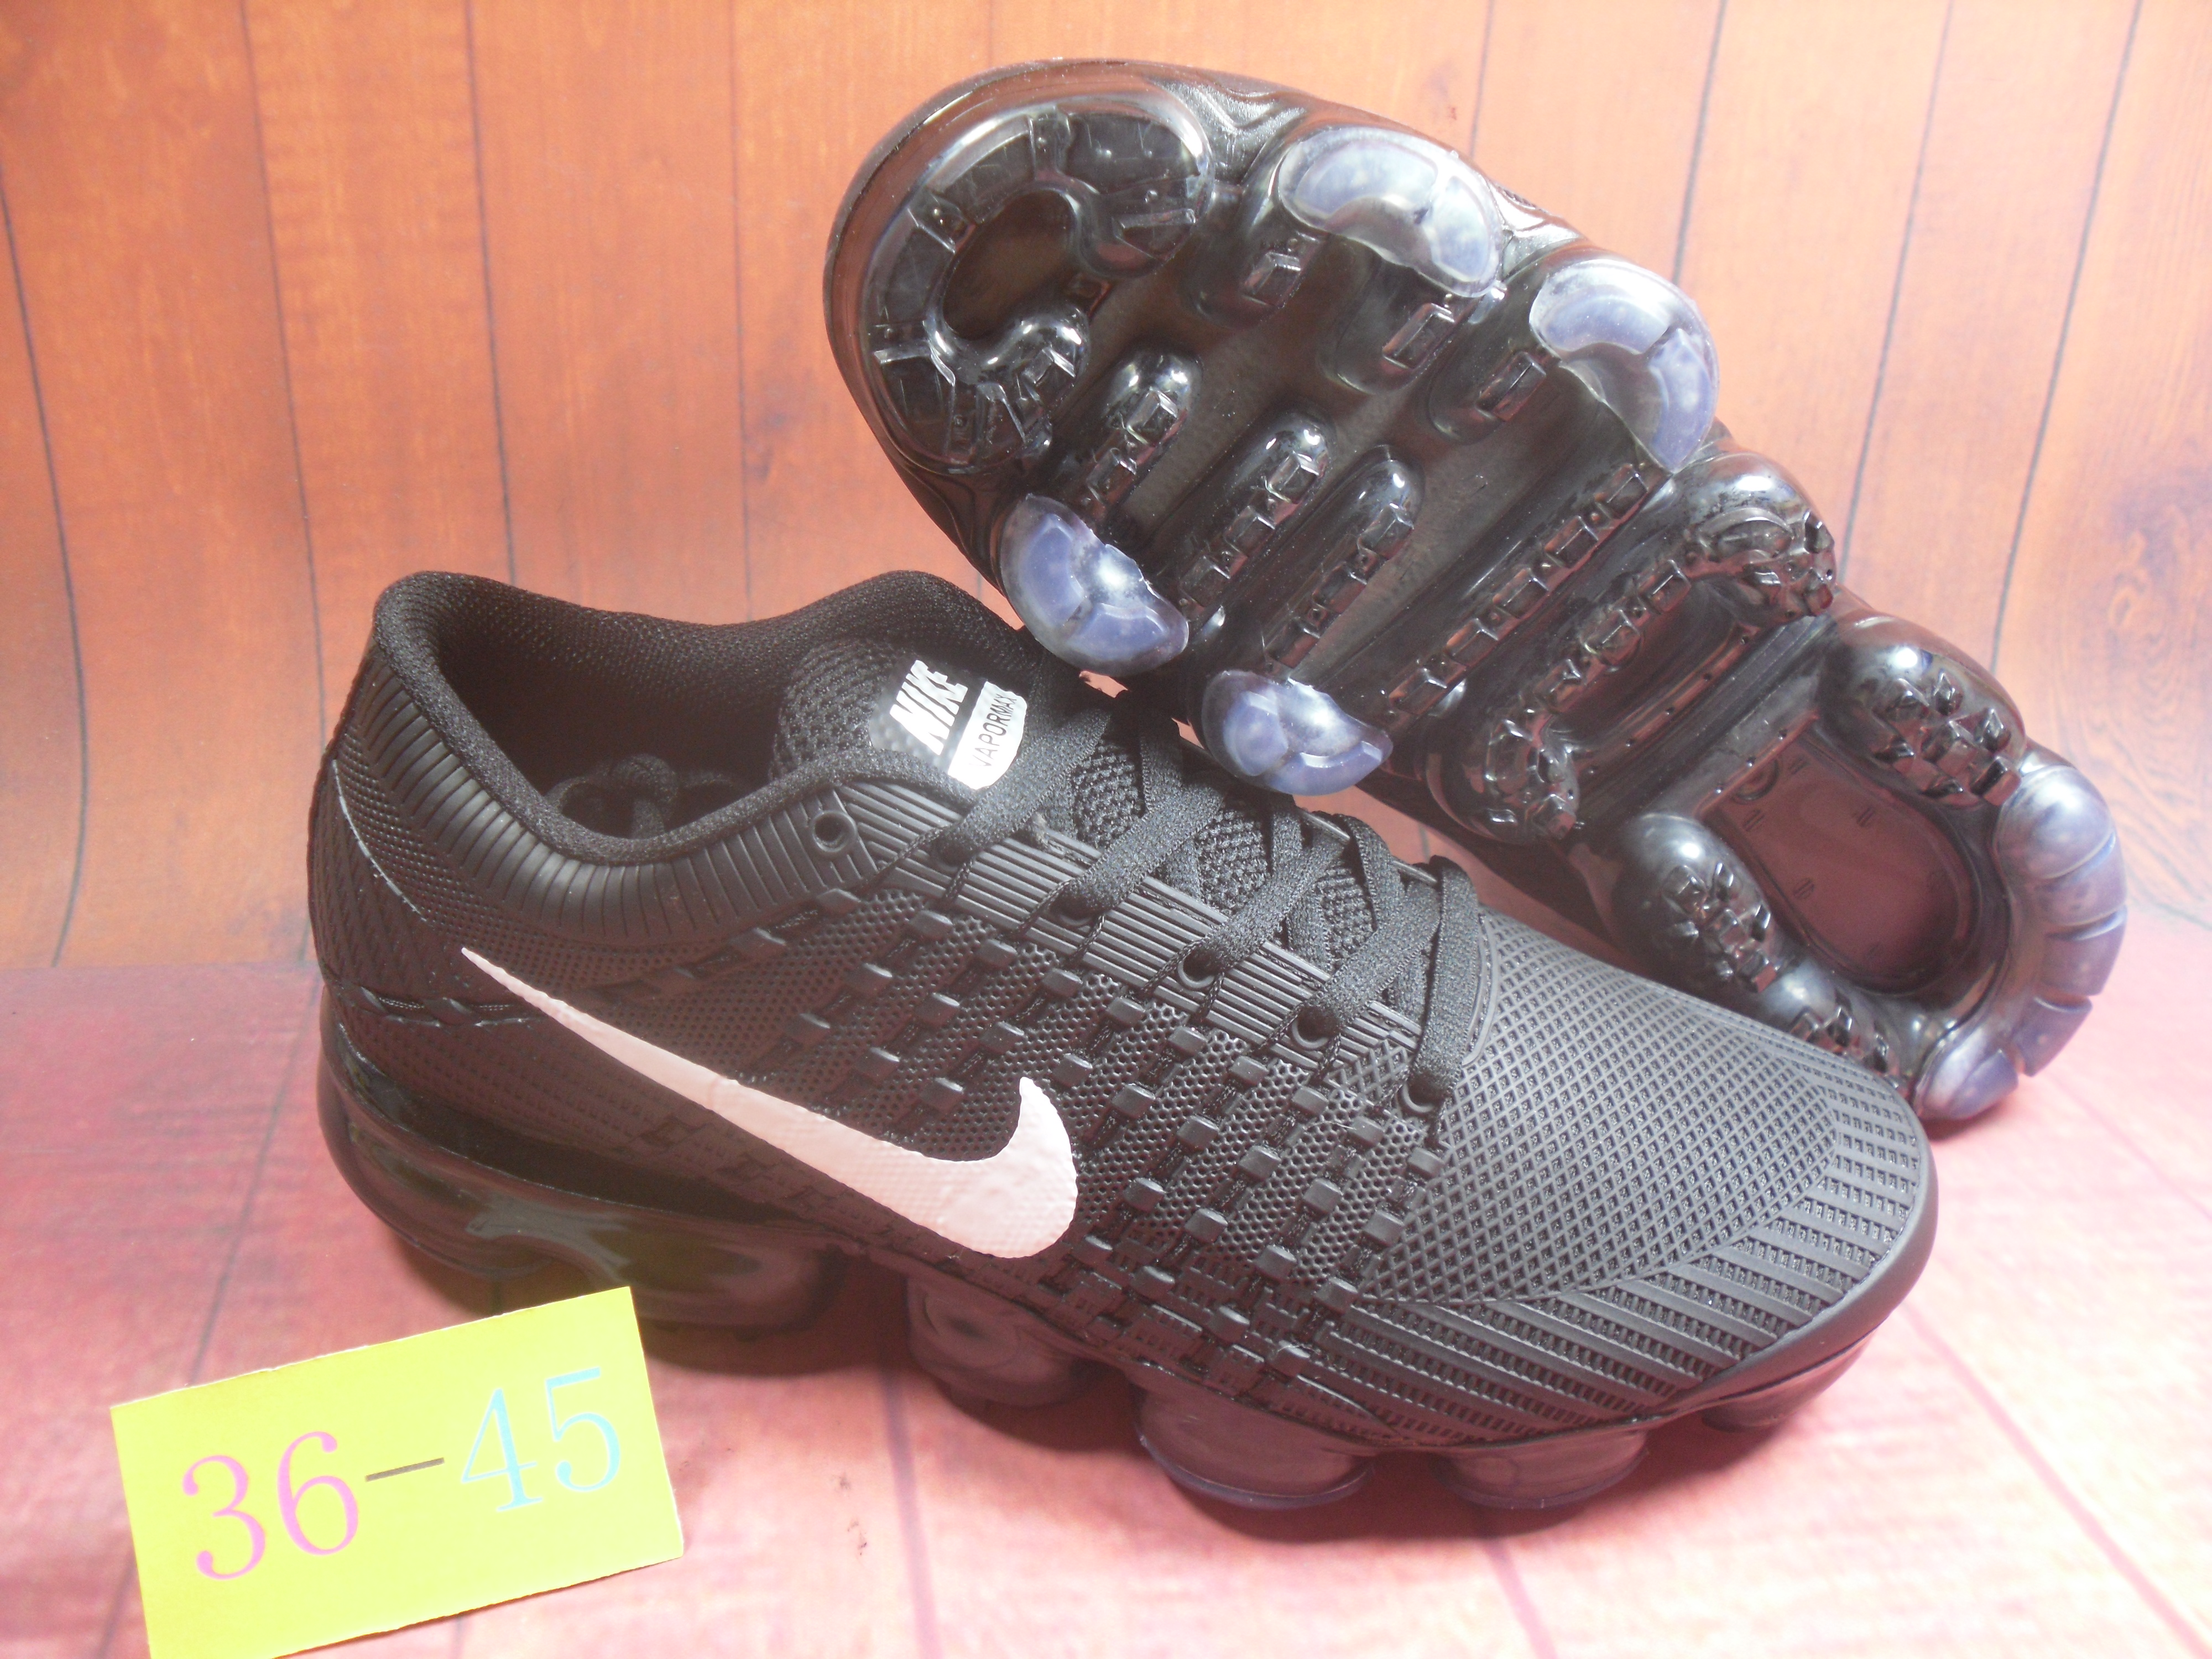 2018 Nike Air VaporMax Flyknit KPU All Black White Shoes